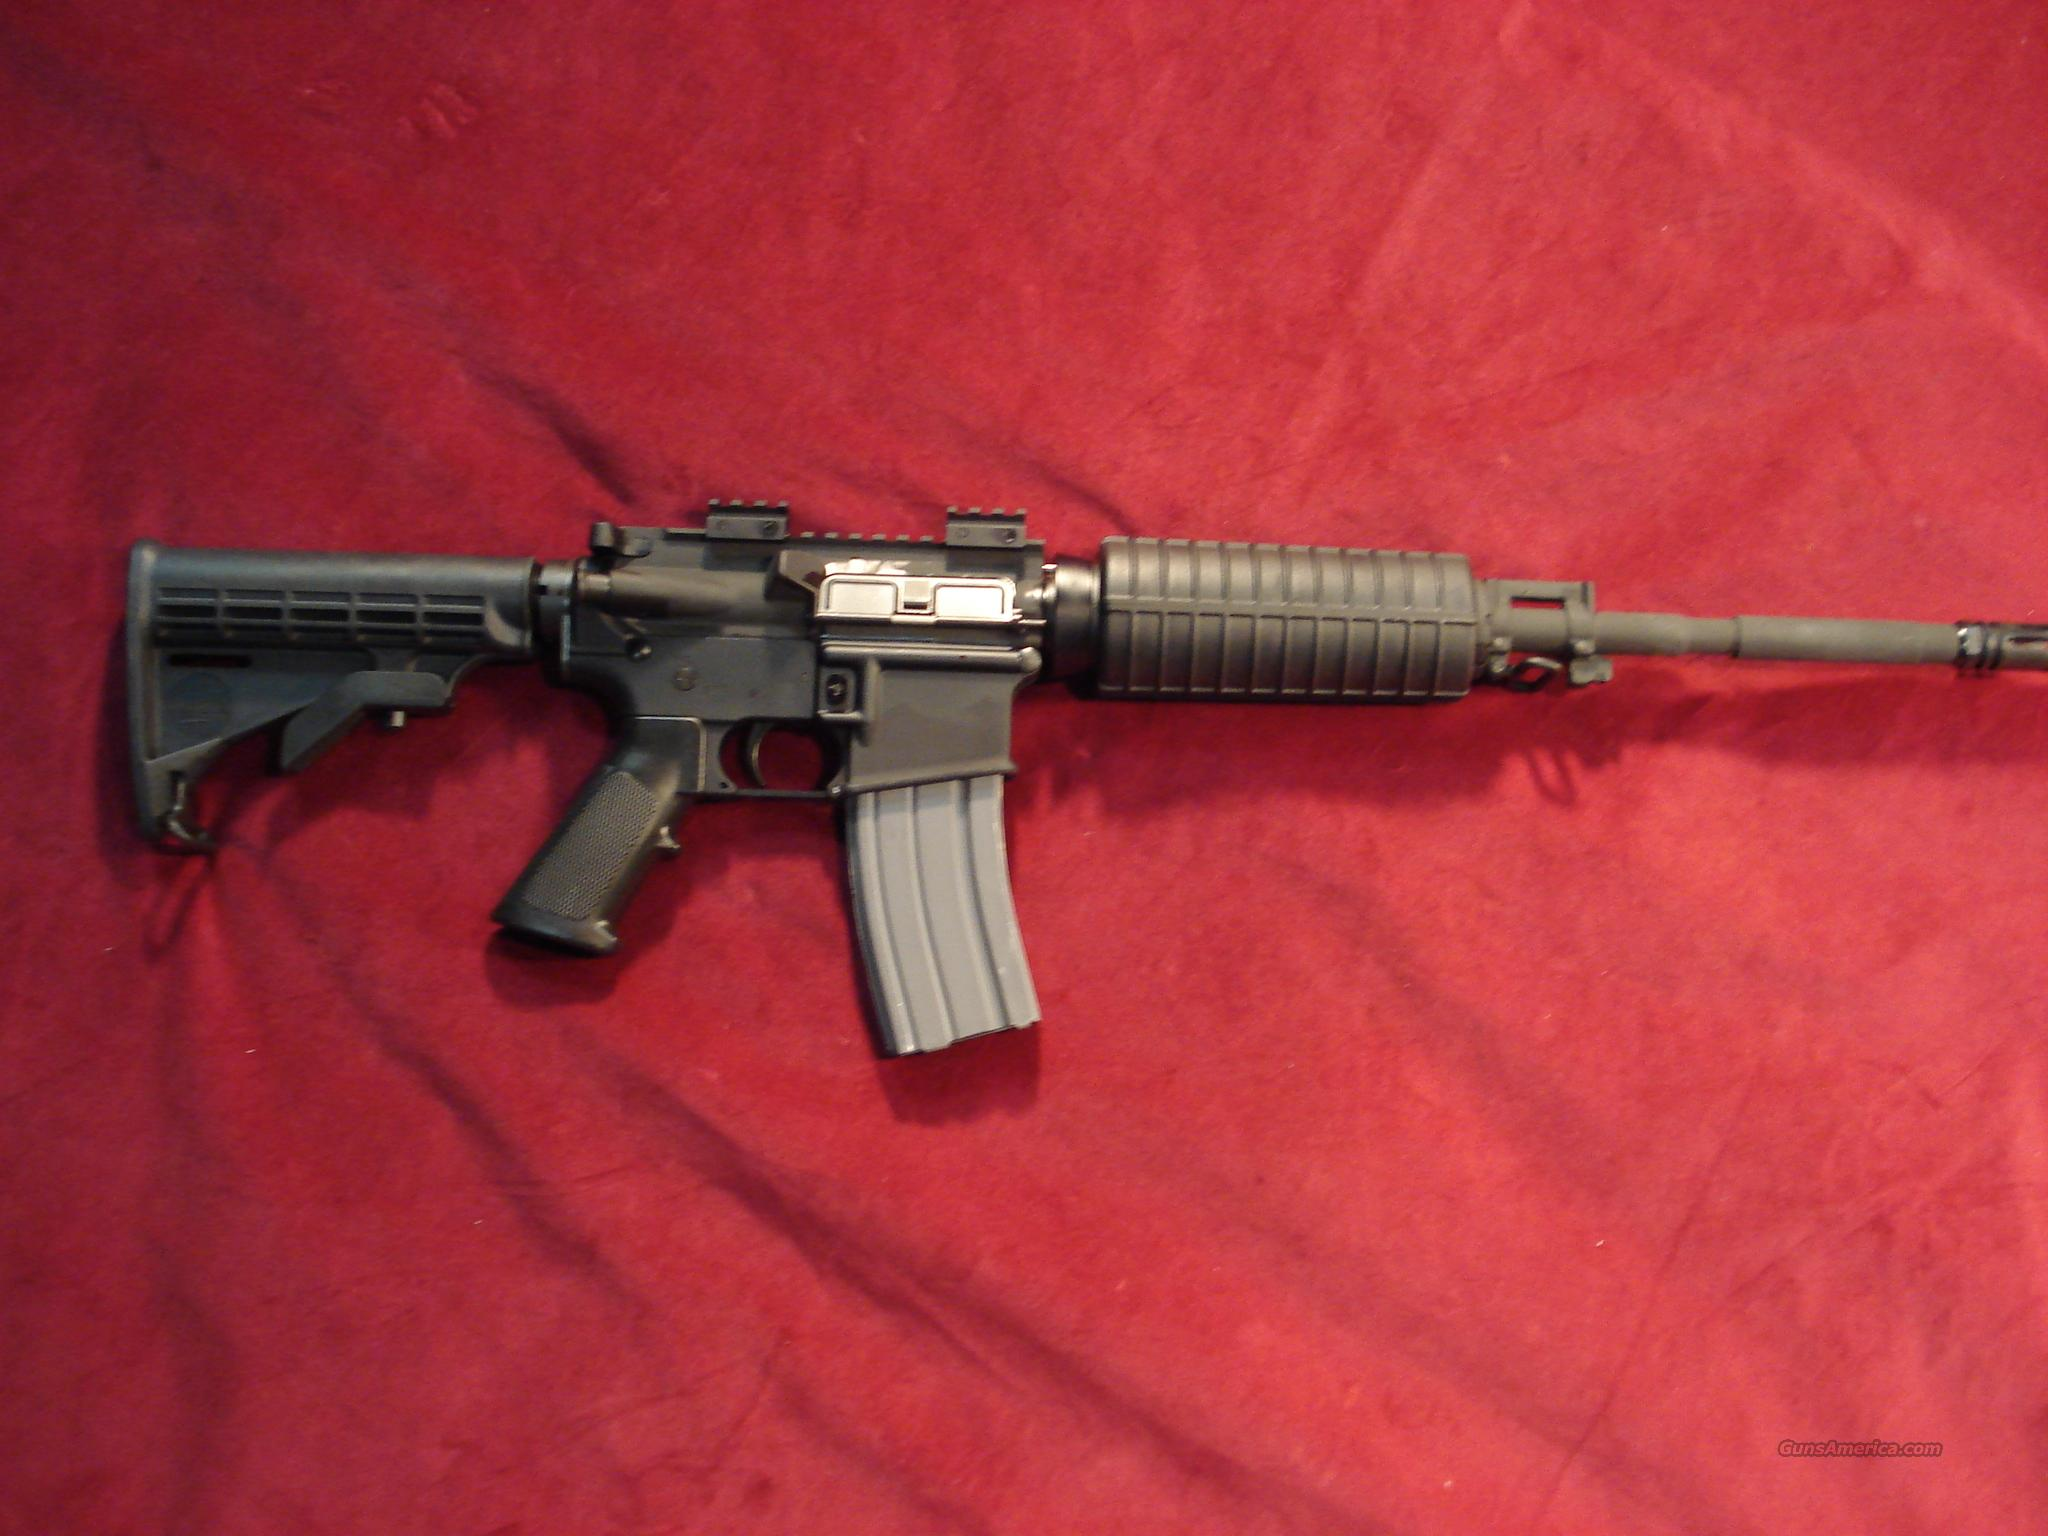 BUSHMASTER M4 OPTIC READY CARBINE  Guns > Rifles > Bushmaster Rifles > Complete Rifles